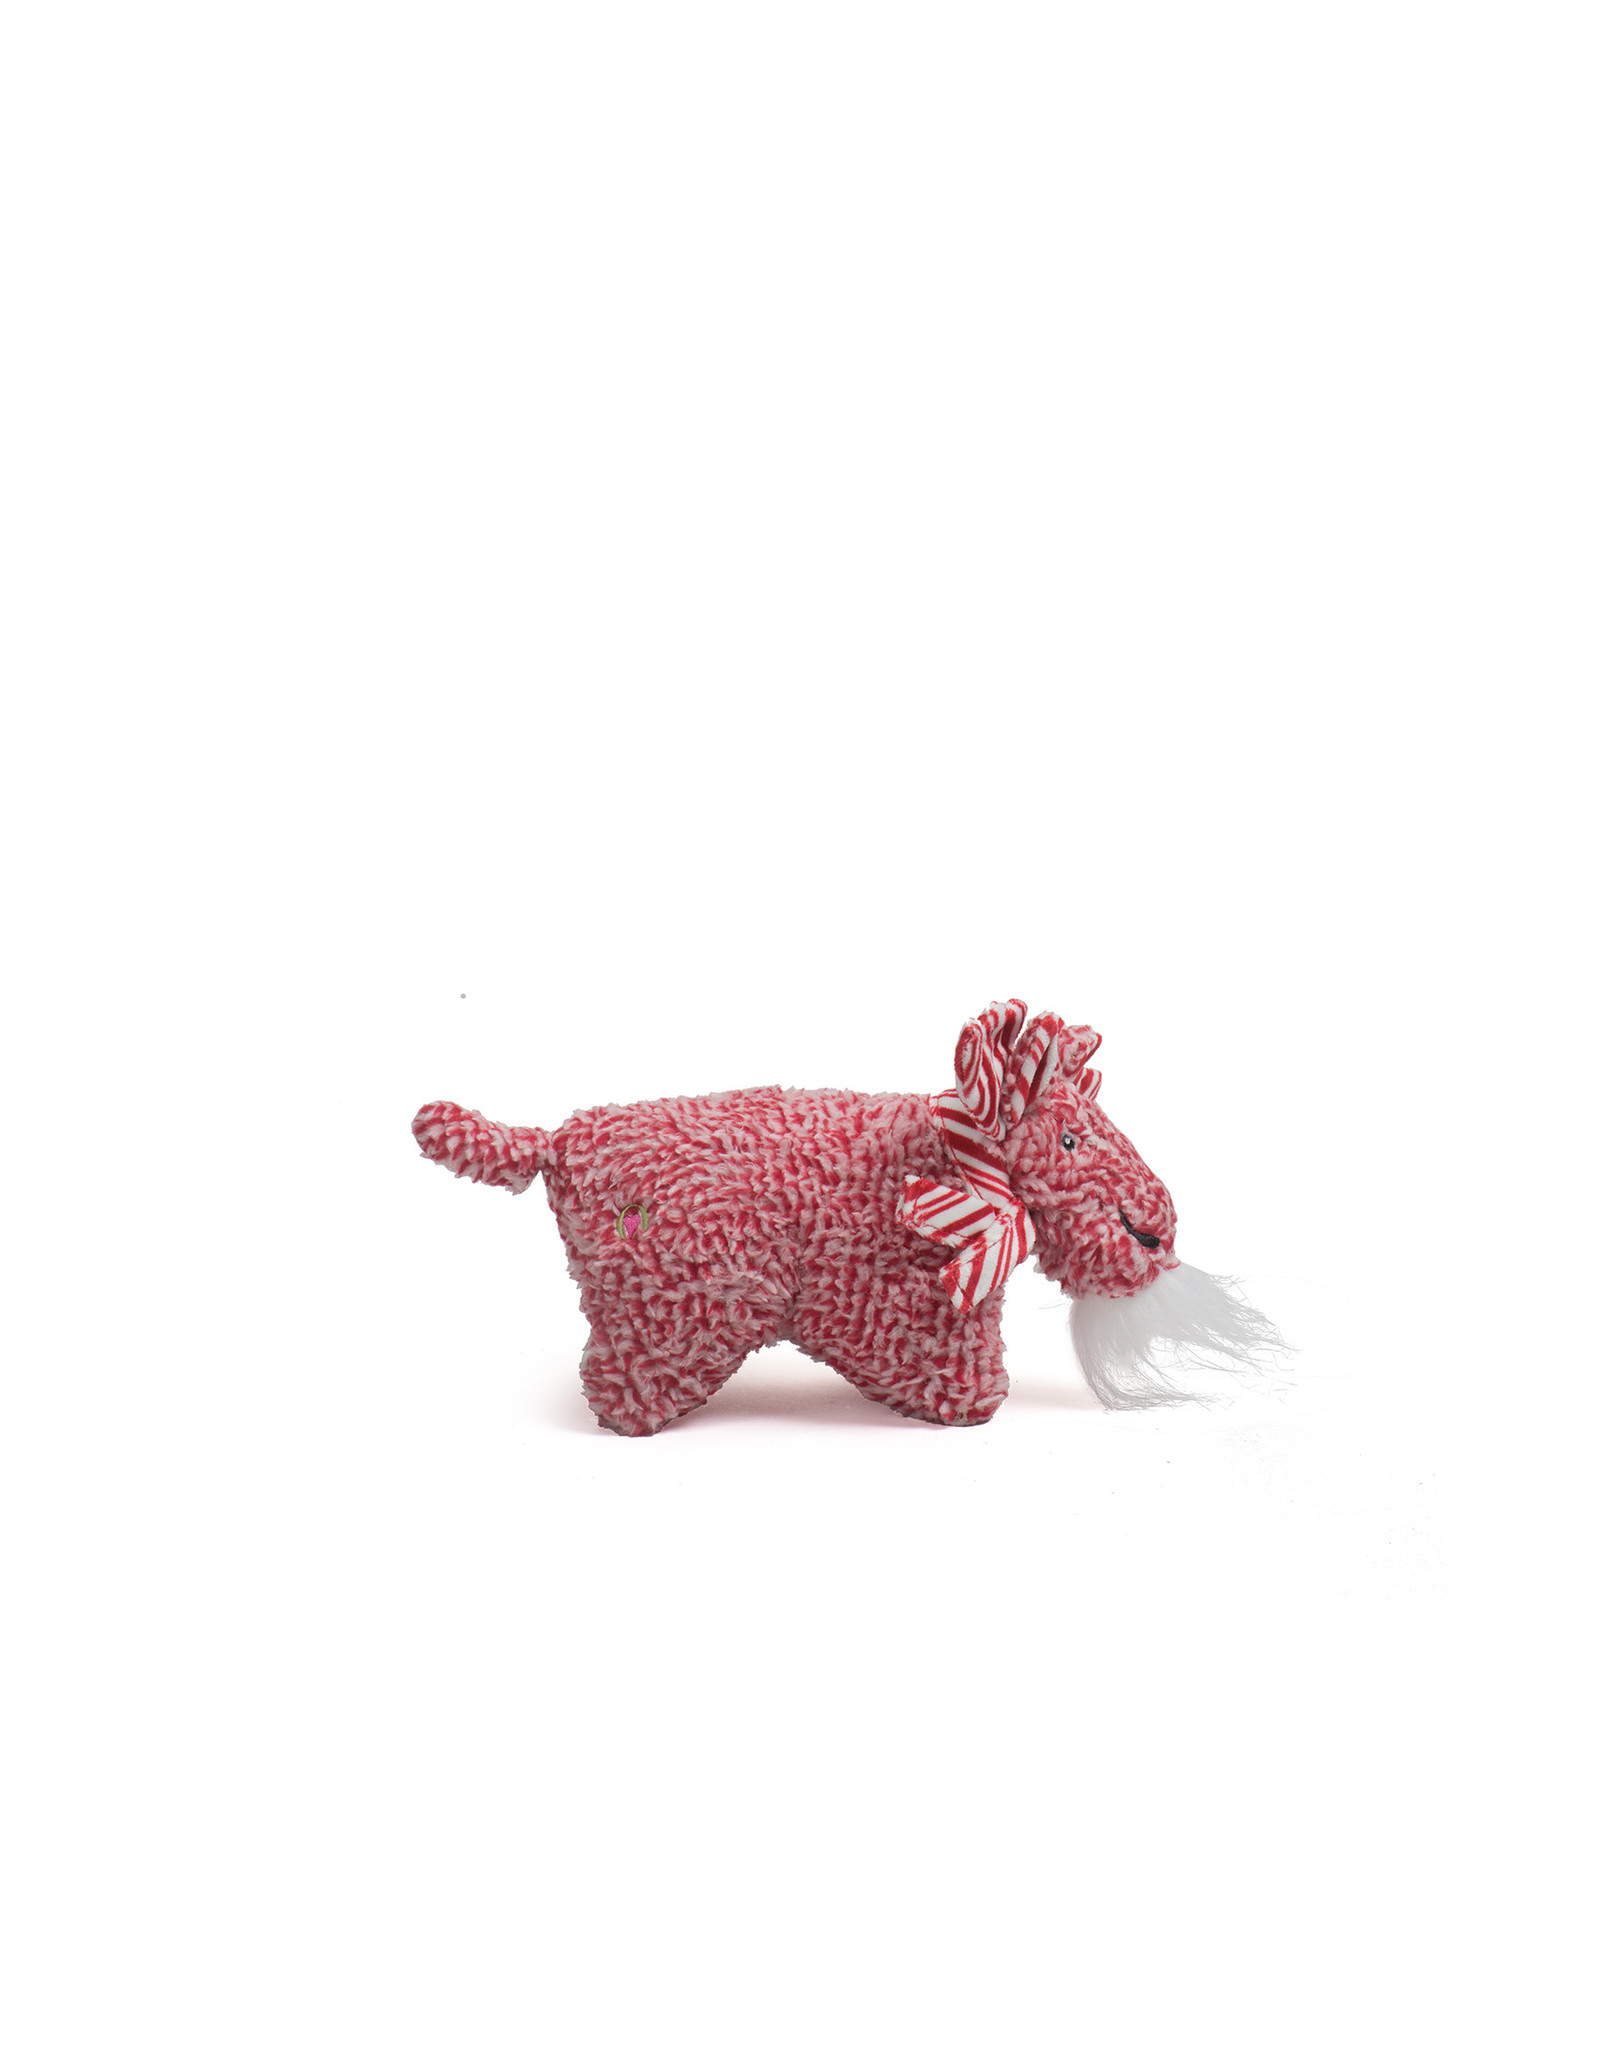 Hugglehounds Peppermint Collection Squooshie: Moose, S